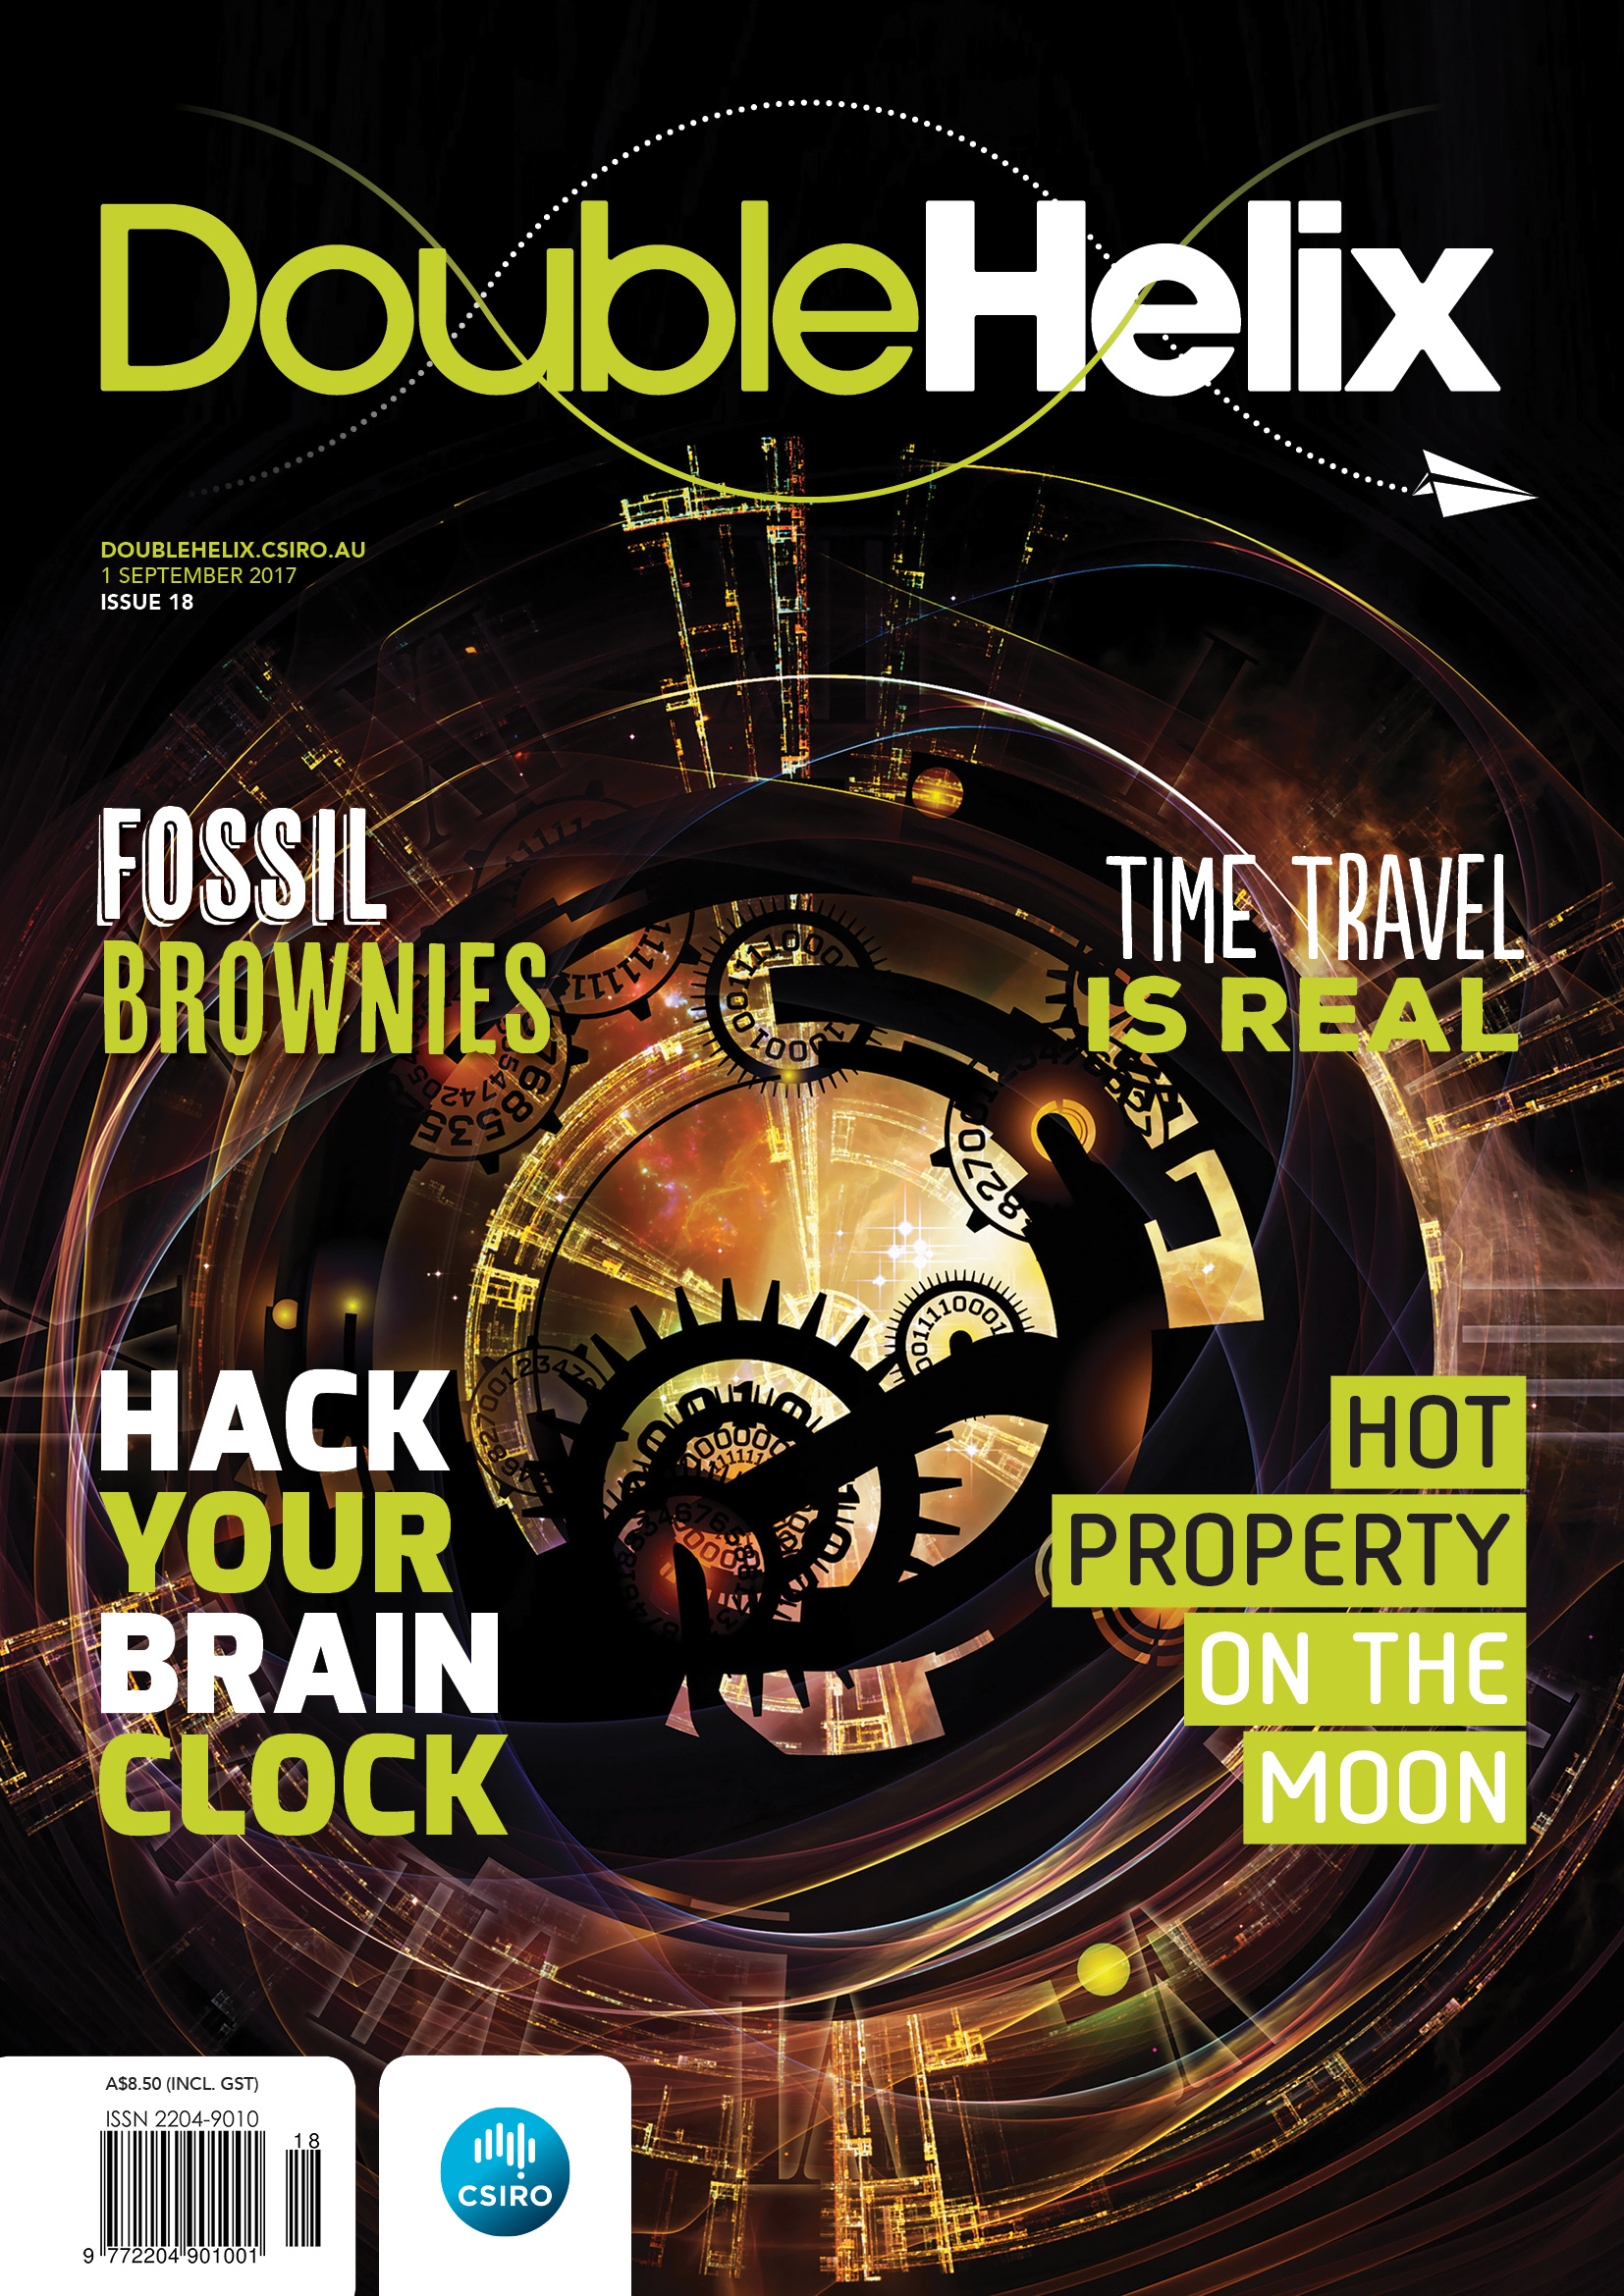 Cover with abstract image of mechanical clockworks and gears.